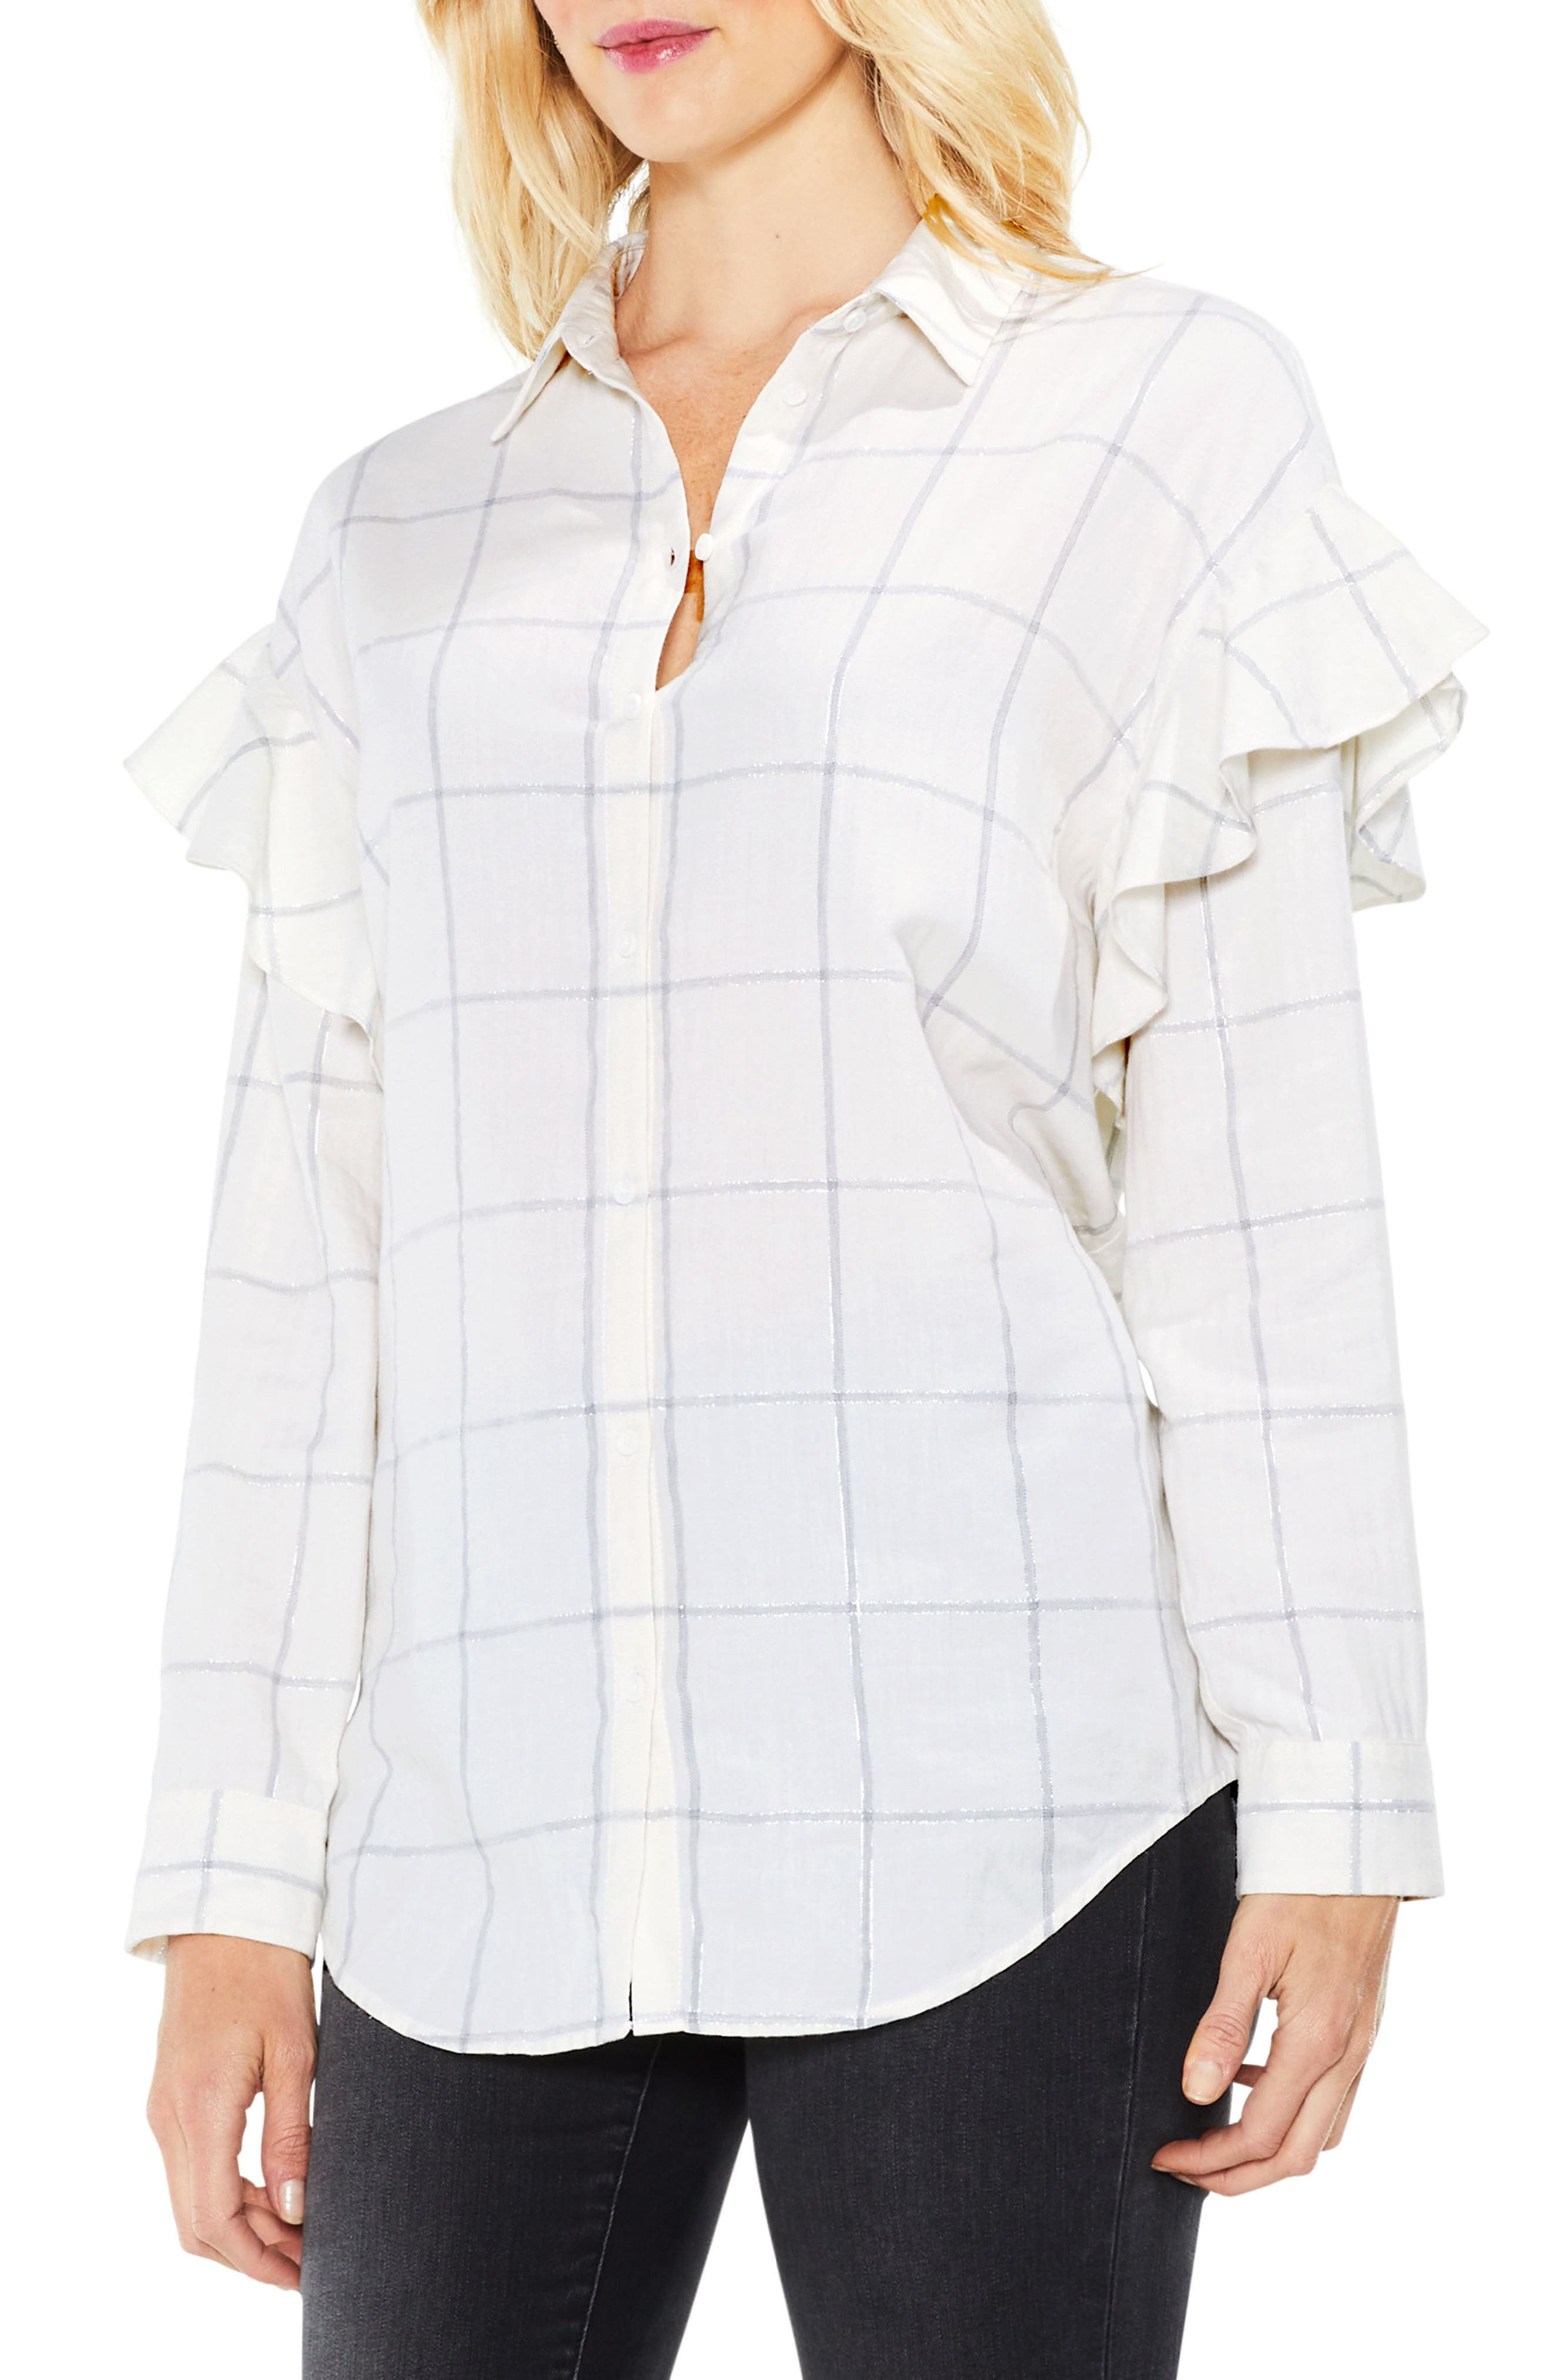 Main Image - Two by Vince Camuto Ruffle Shoulder Windowpane Plaid Top